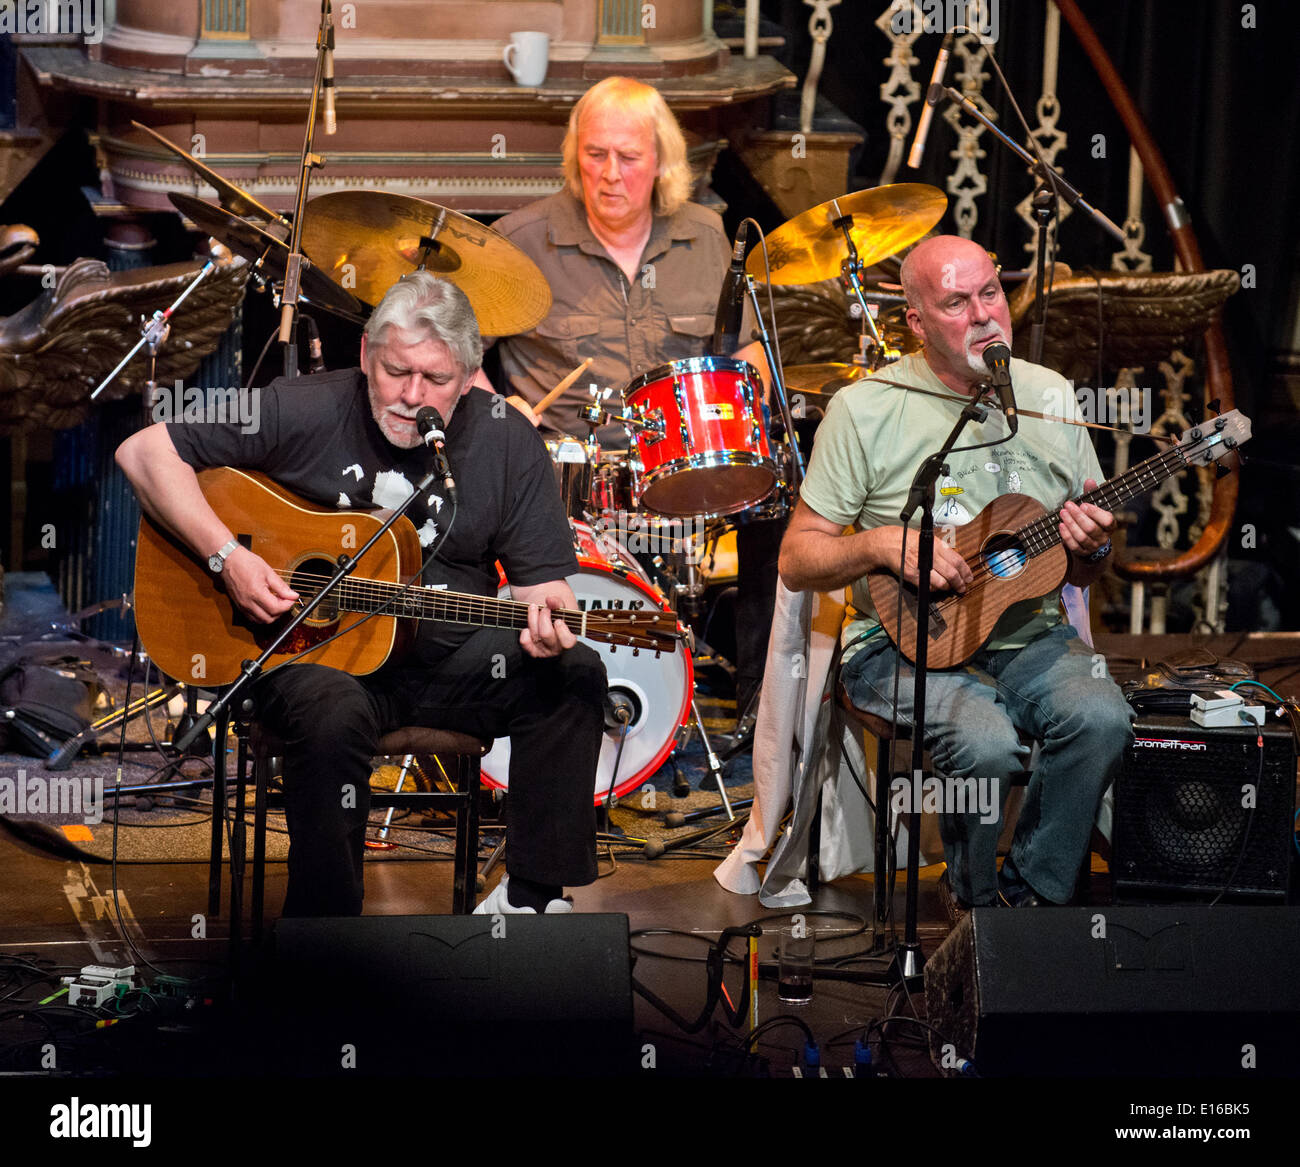 Picture By: Charlie Bryan Picture :Worcester UK : Fairport Convention, Simon Nicol,Dave Pegg,Gerry Conway,Chris Leslie and Ric Sanders,performing at Worcesters Huntington Hall, during their 'Semi Acoustic UK Tour'. Date  23/05/2014 Ref: - Stock Image